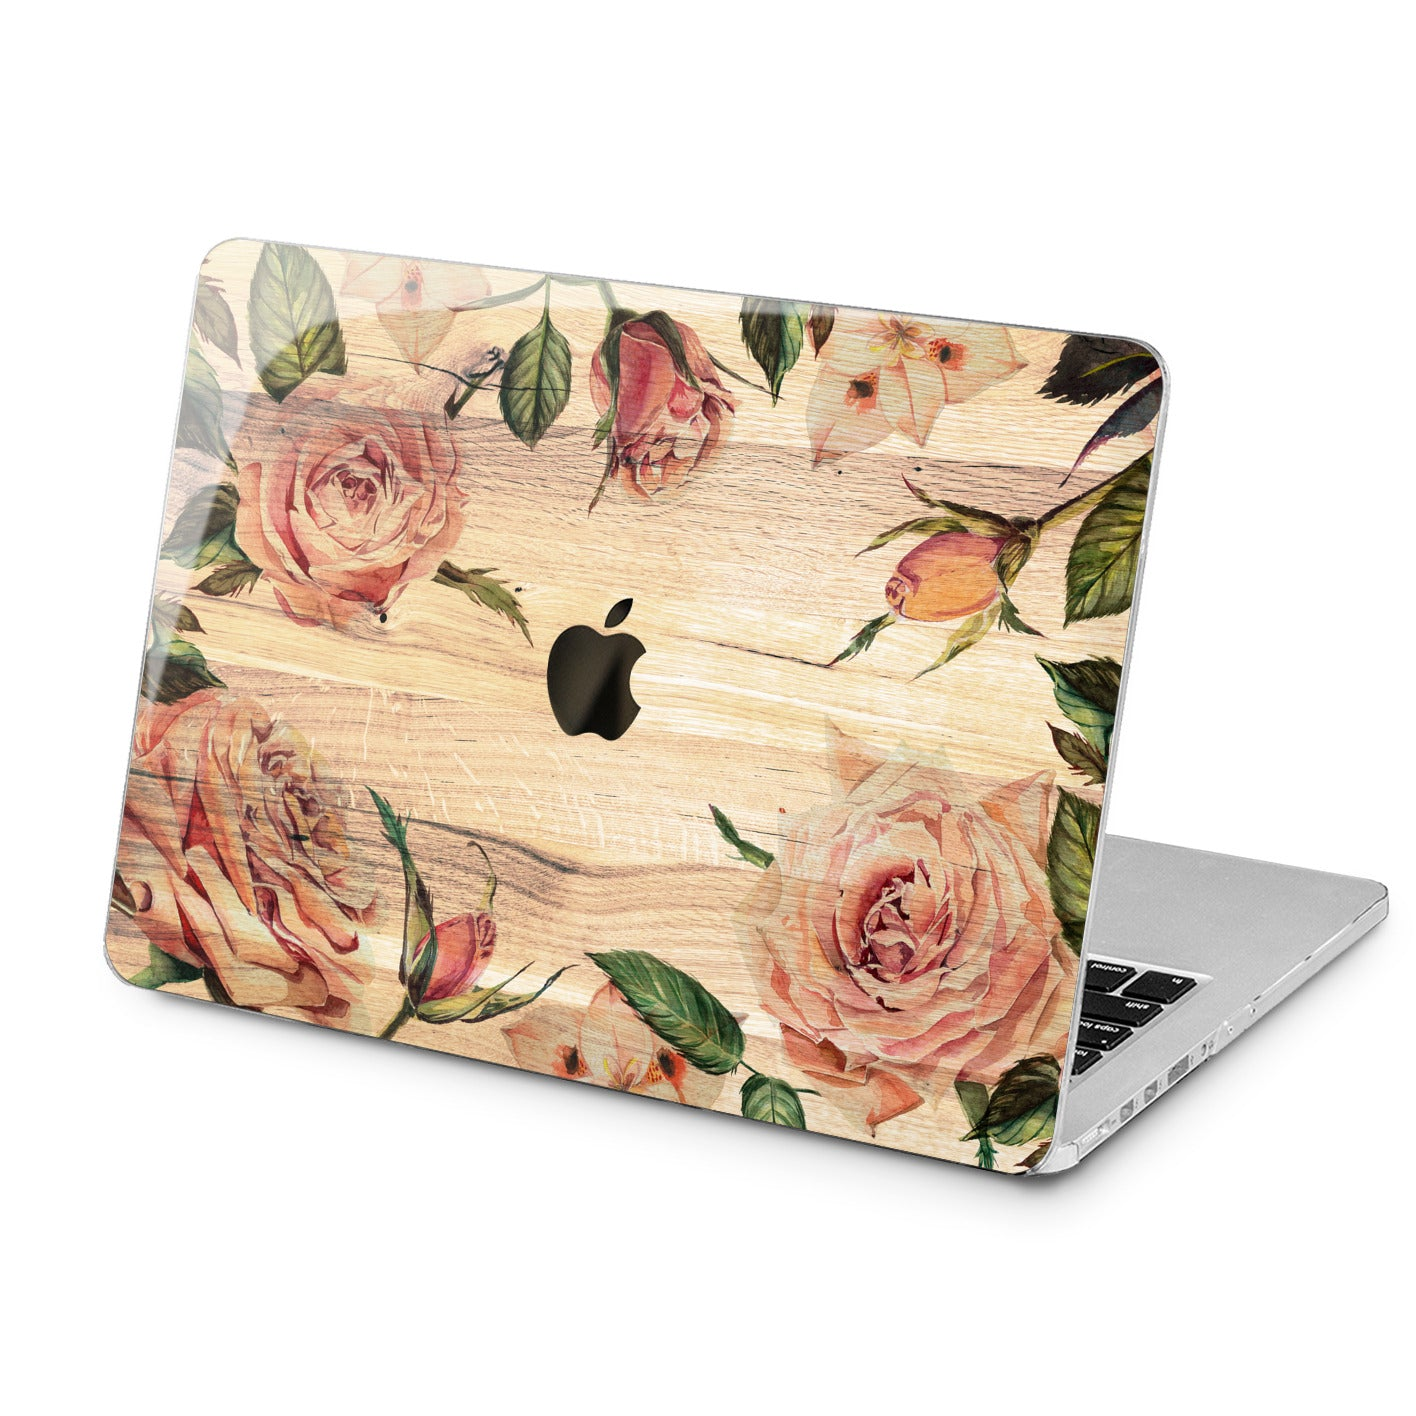 Lex Altern Lex Altern Rose Design Case for your Laptop Apple Macbook.